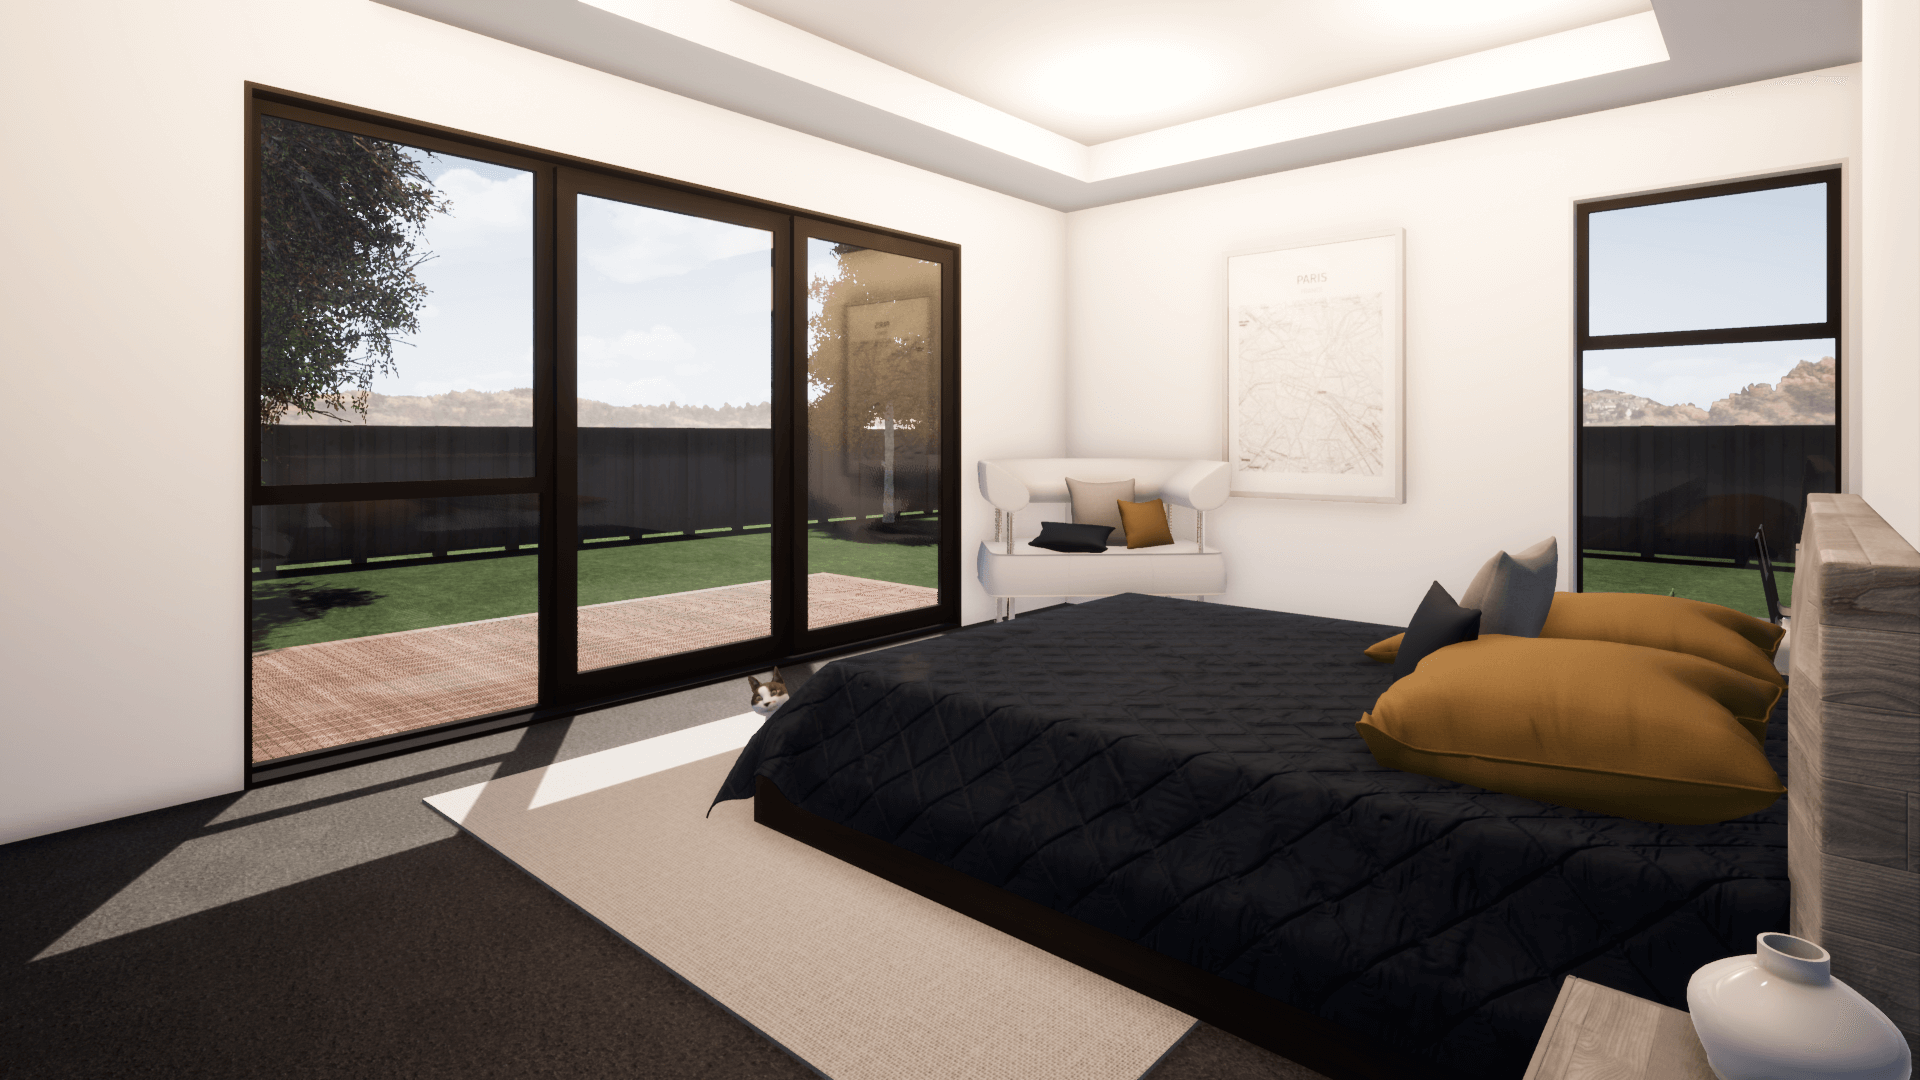 Master bedroom design prefab home Waitaki 3